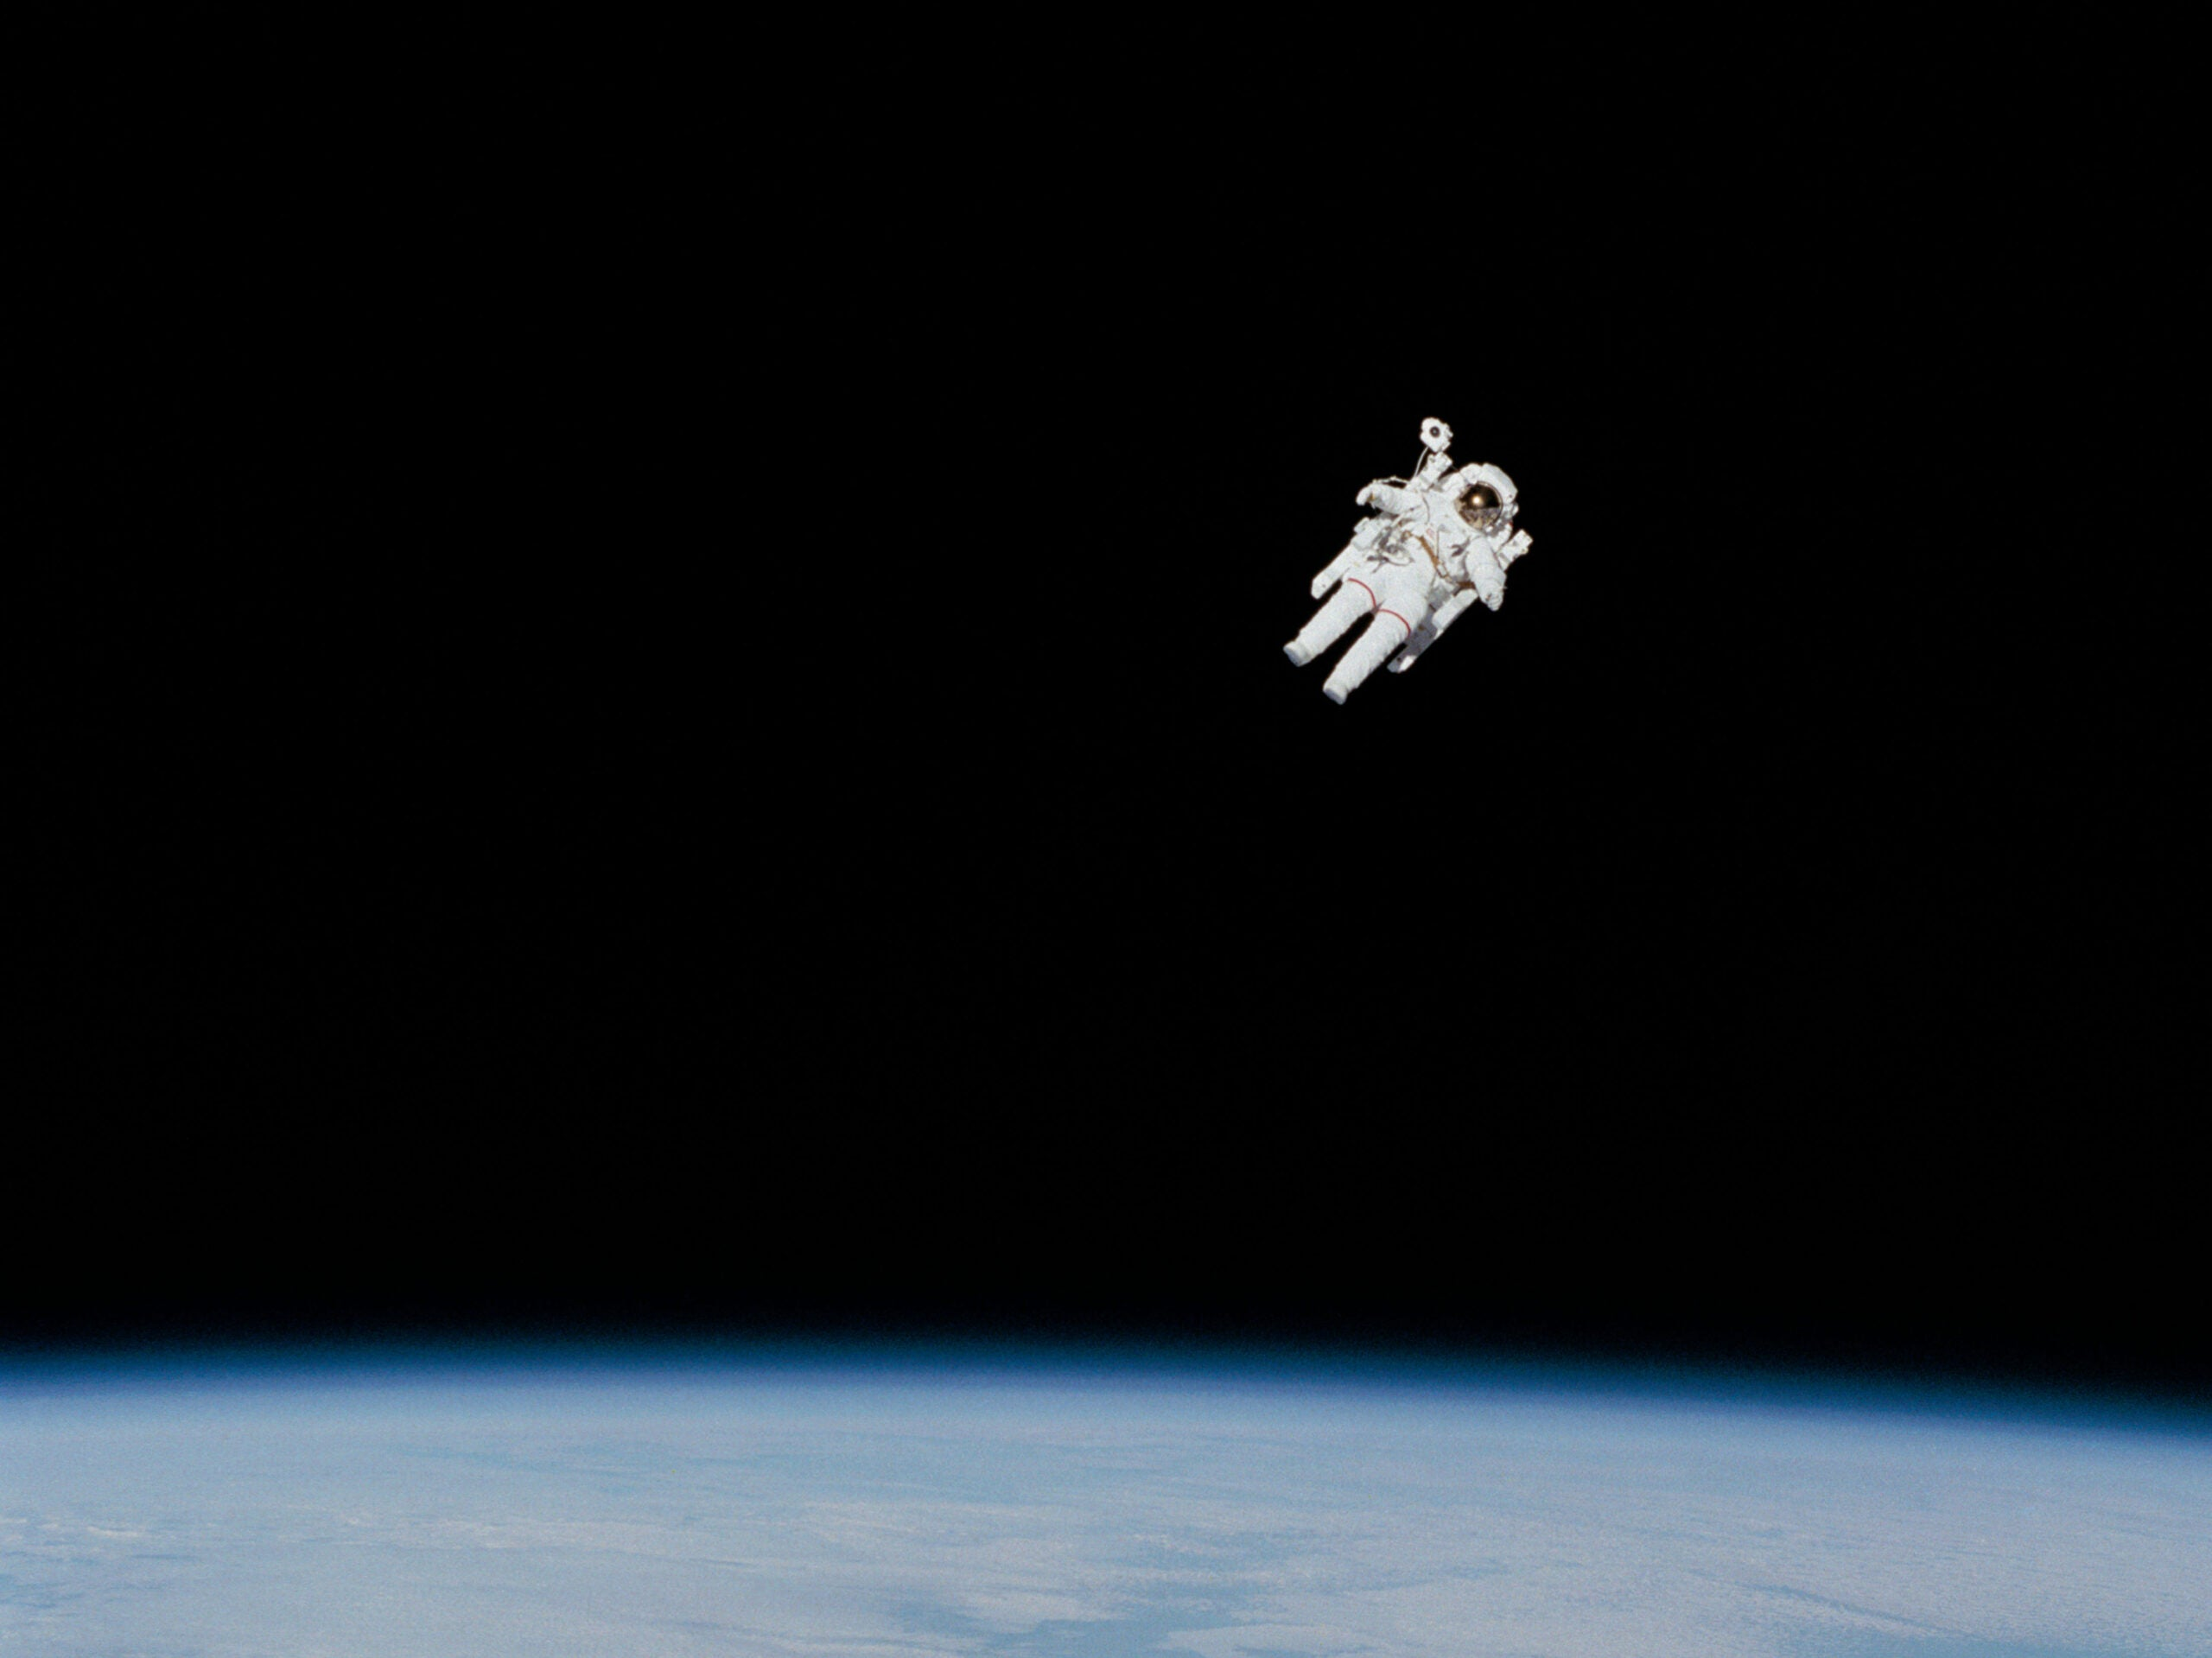 Why NASA is running out of spacesuits